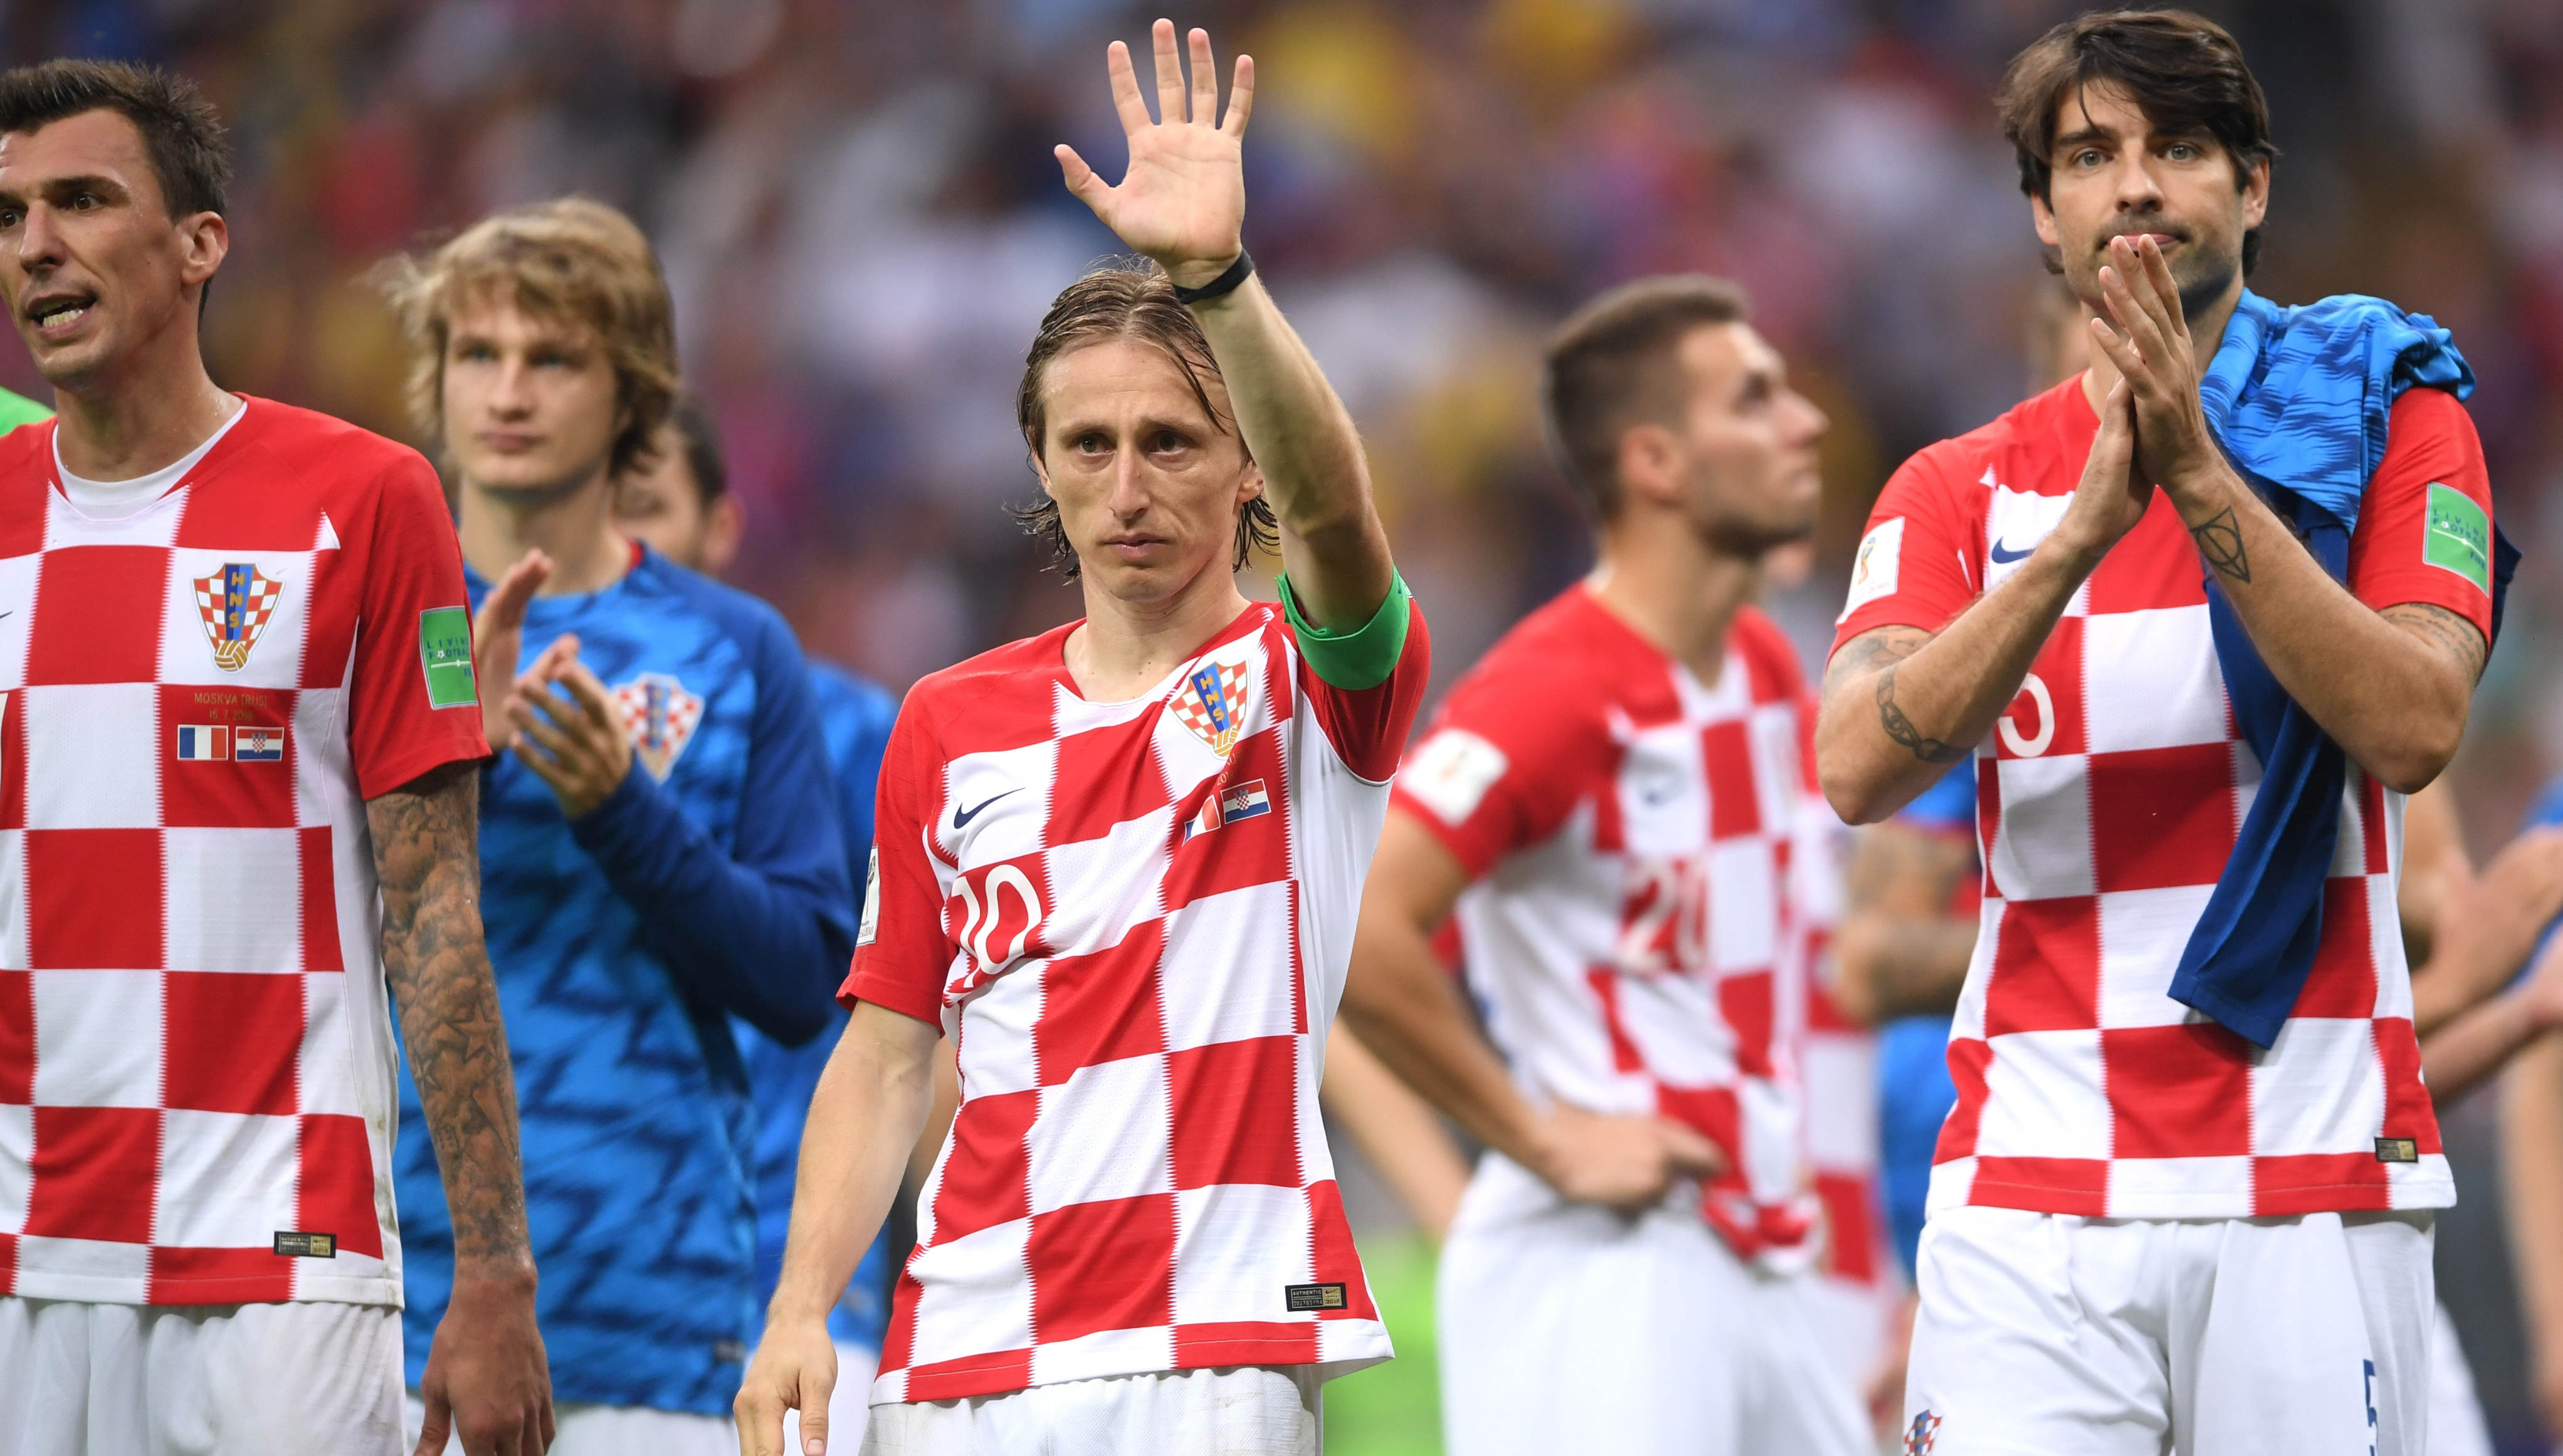 2cadec42f Luka Modric unable to muster much magic as he wins Golden Ball but fails to  shine in World Cup final